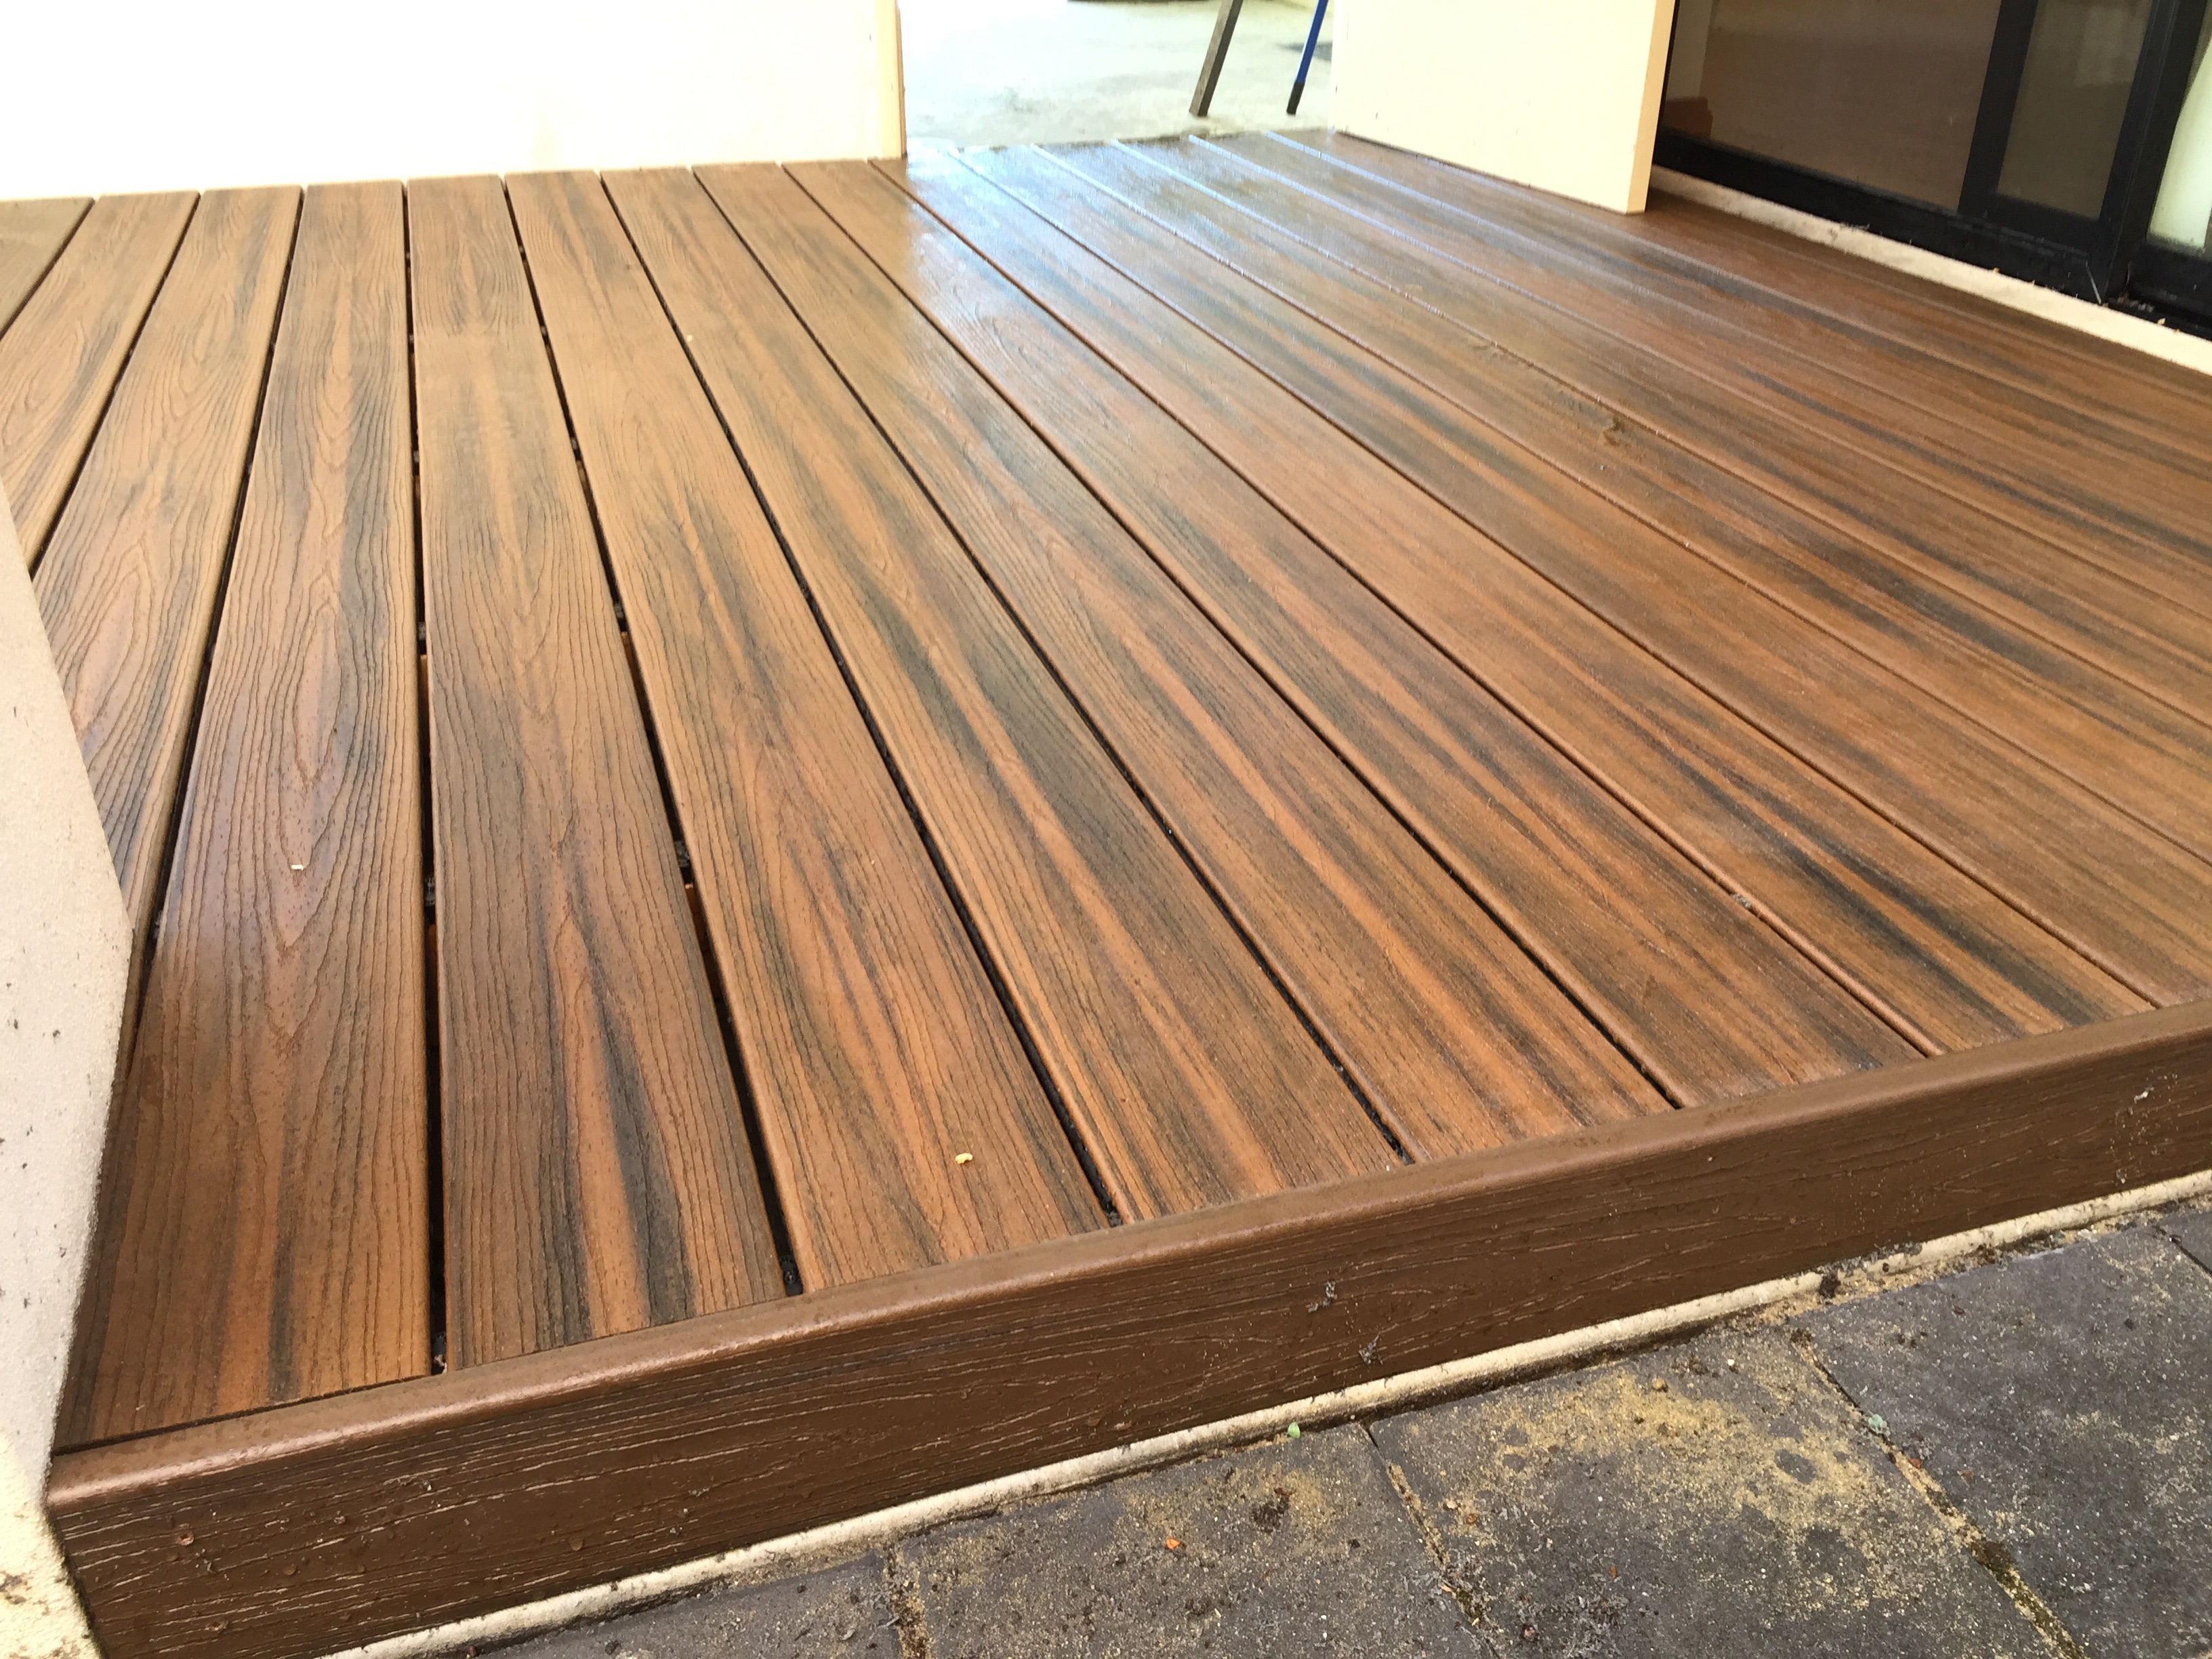 Trex Deck Boards Composite Decking Perth: compare composite decking brands